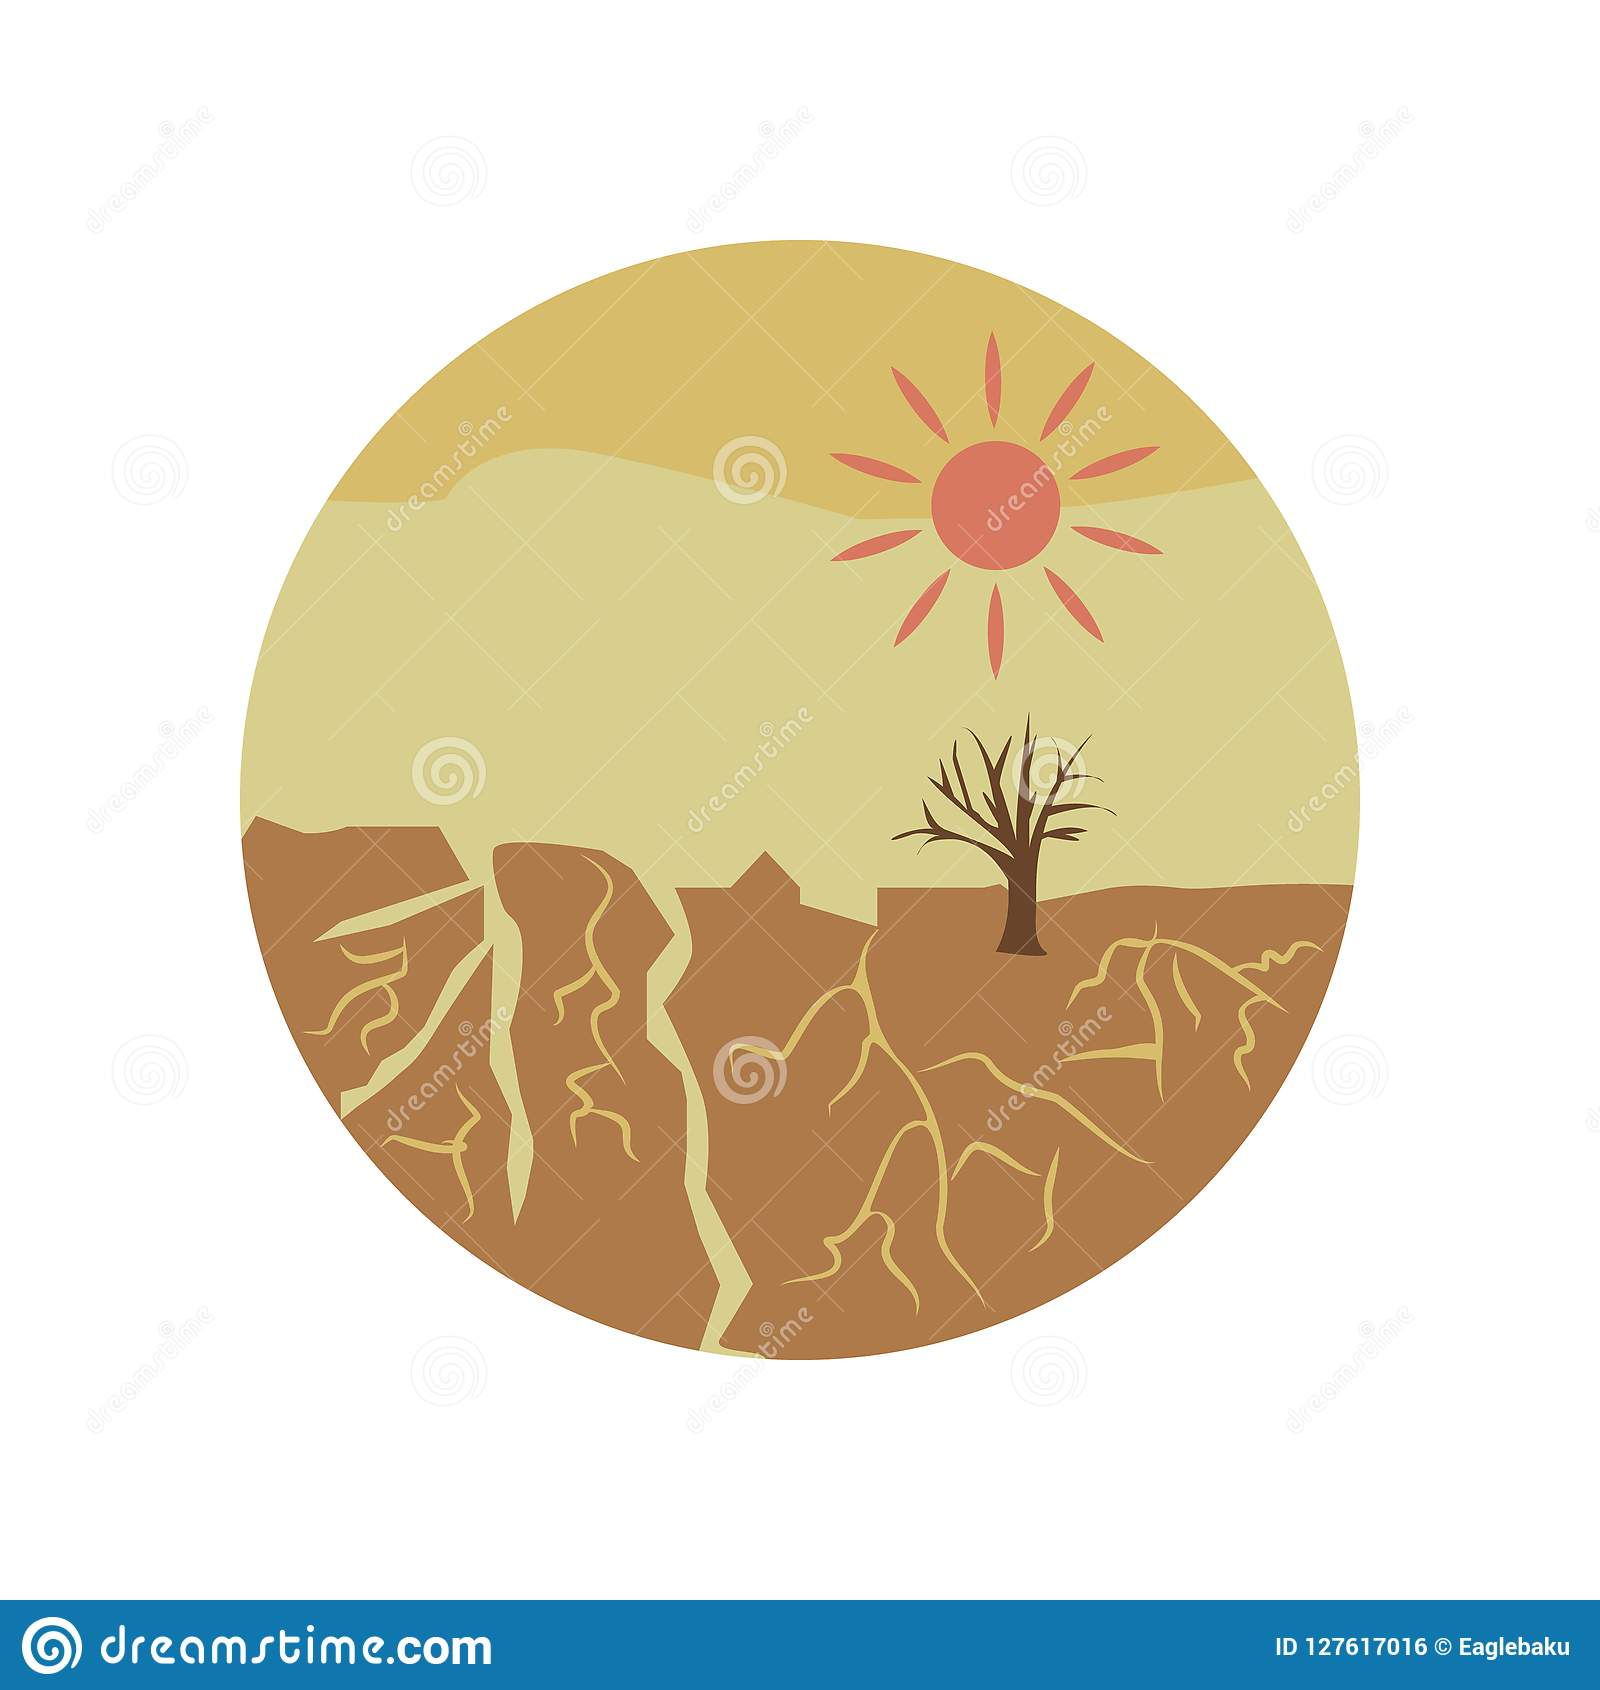 drought disaster color icon. Element of global warming illustration. Premium quality graphic design icon. Signs and symbols collec